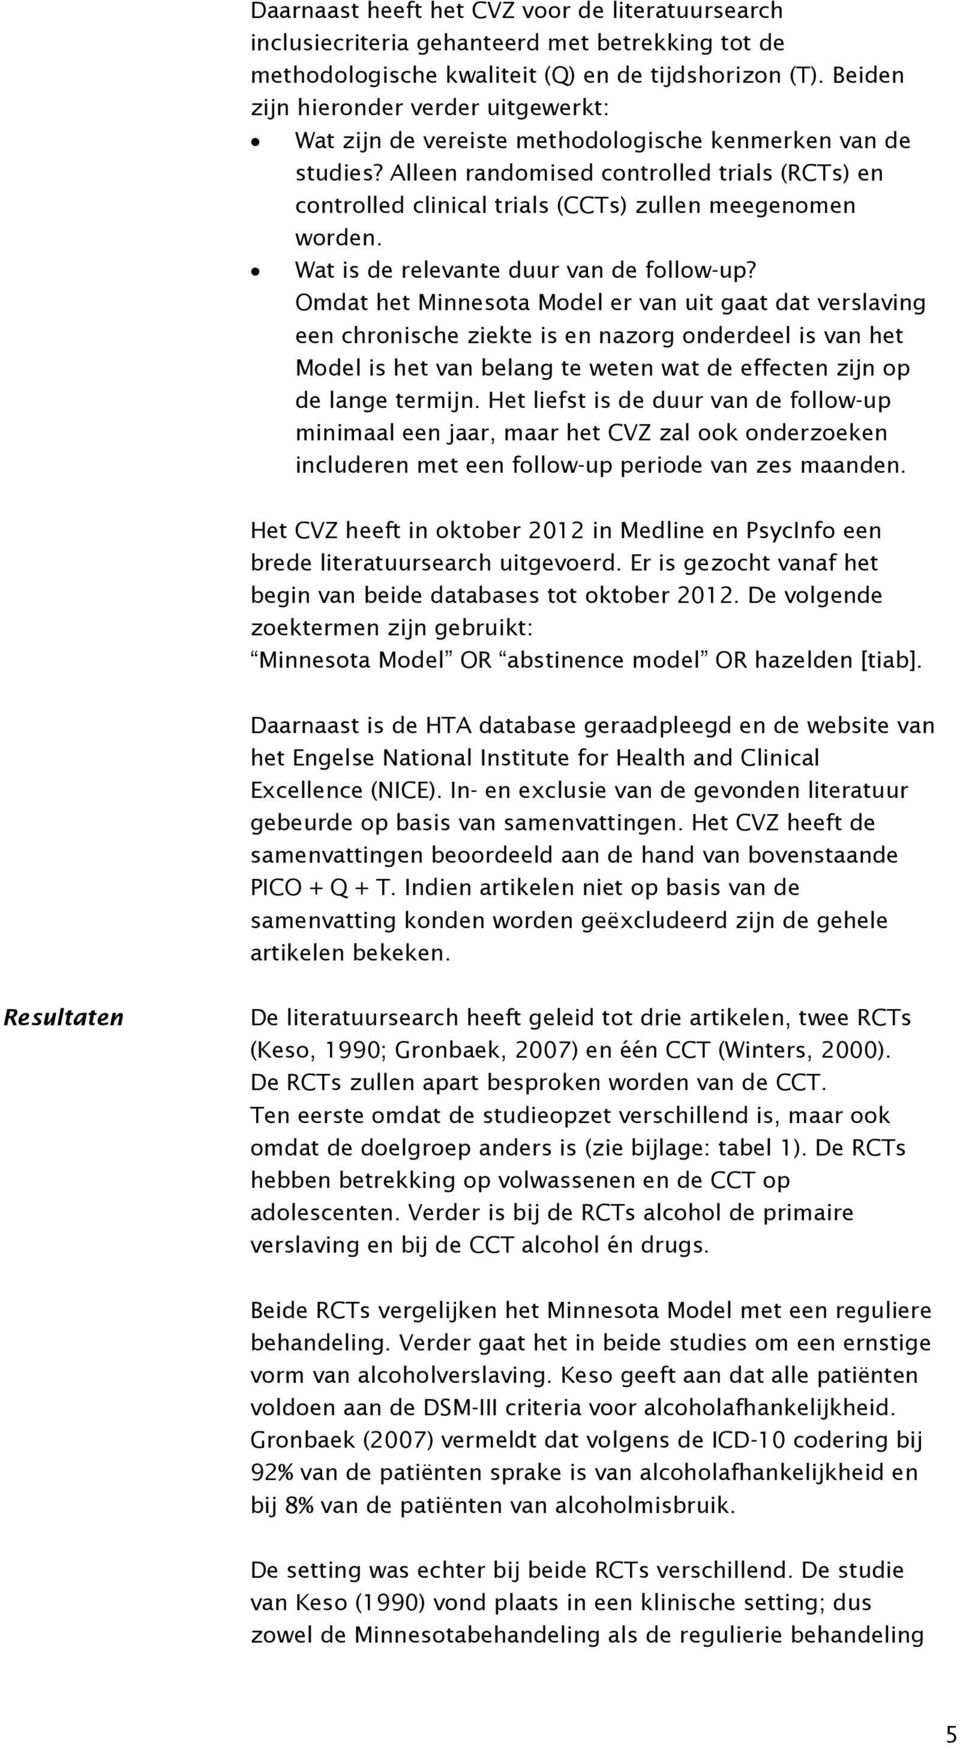 Alleen randomised controlled trials (RCTs) en controlled clinical trials (CCTs) zullen meegenomen worden. Wat is de relevante duur van de follow-up?